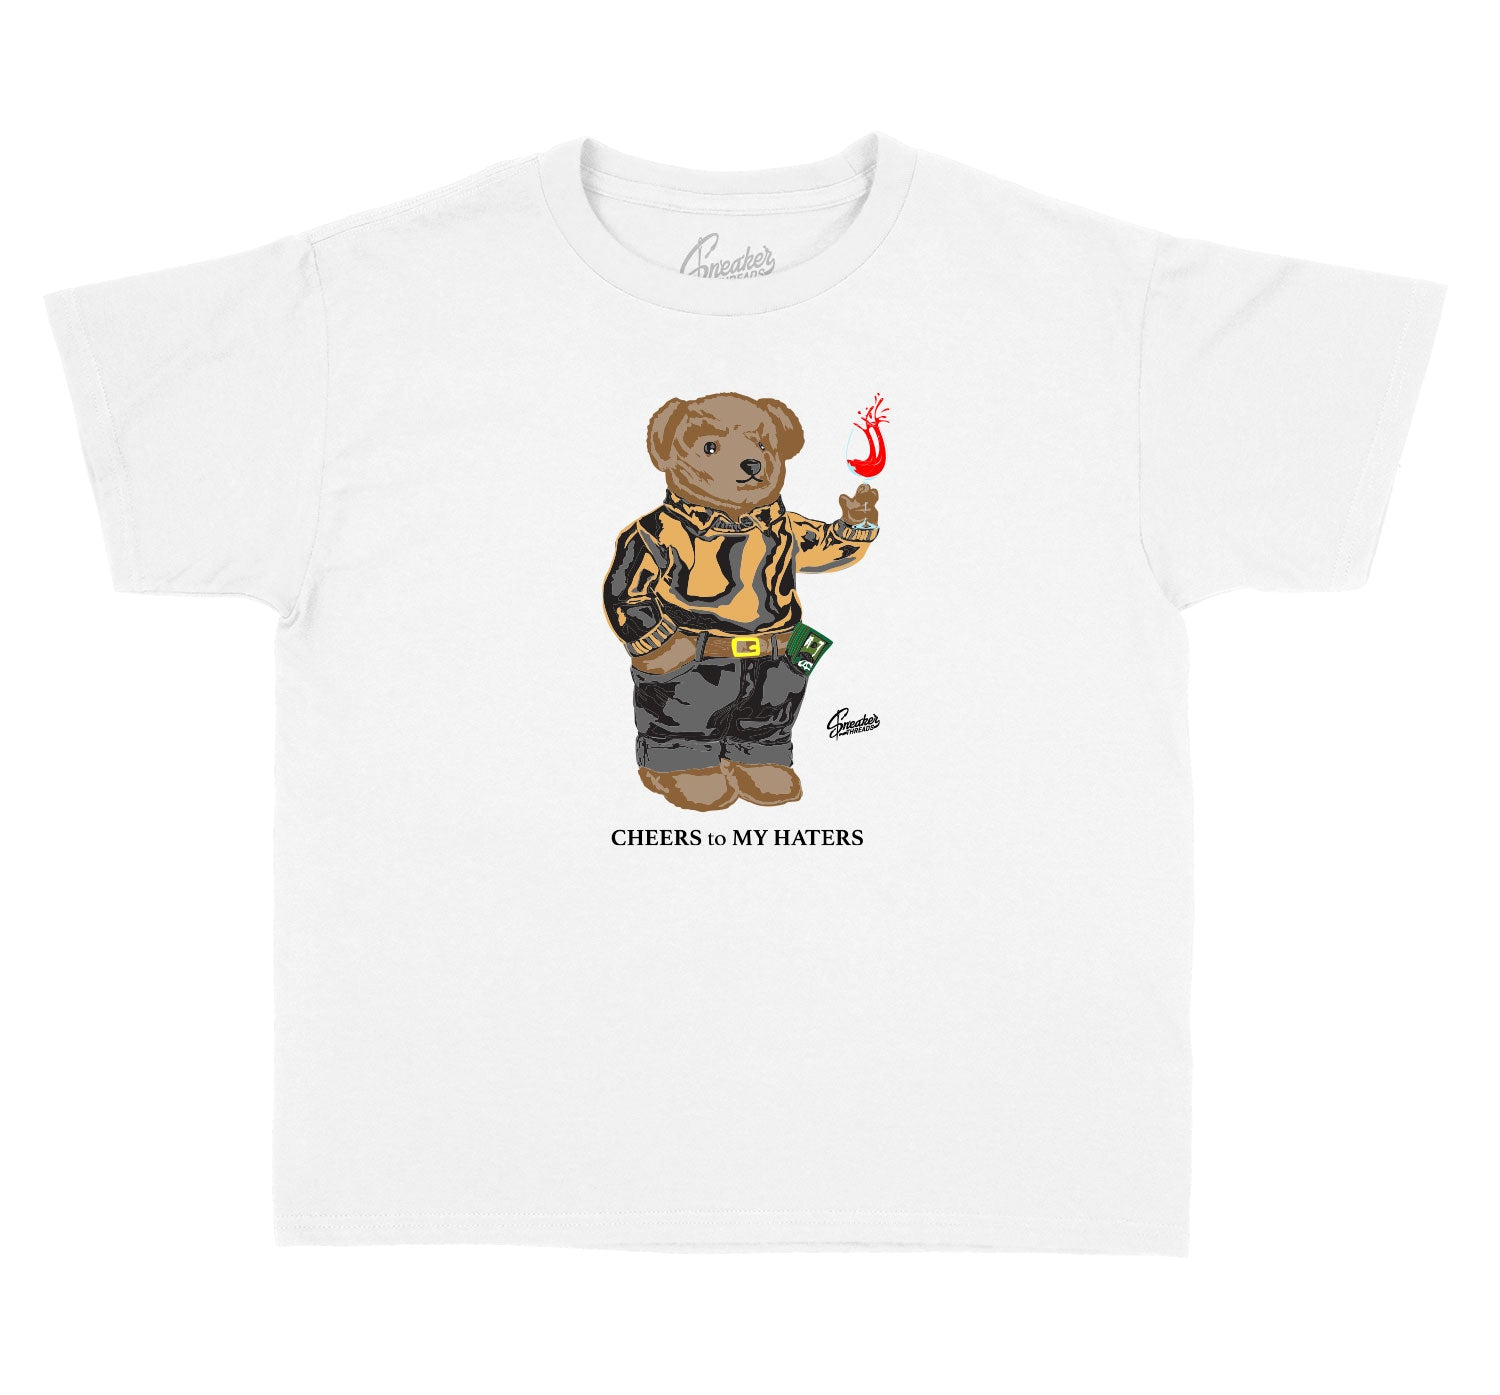 T shirt for kids matching the yeezy 380 mist sneaker collection